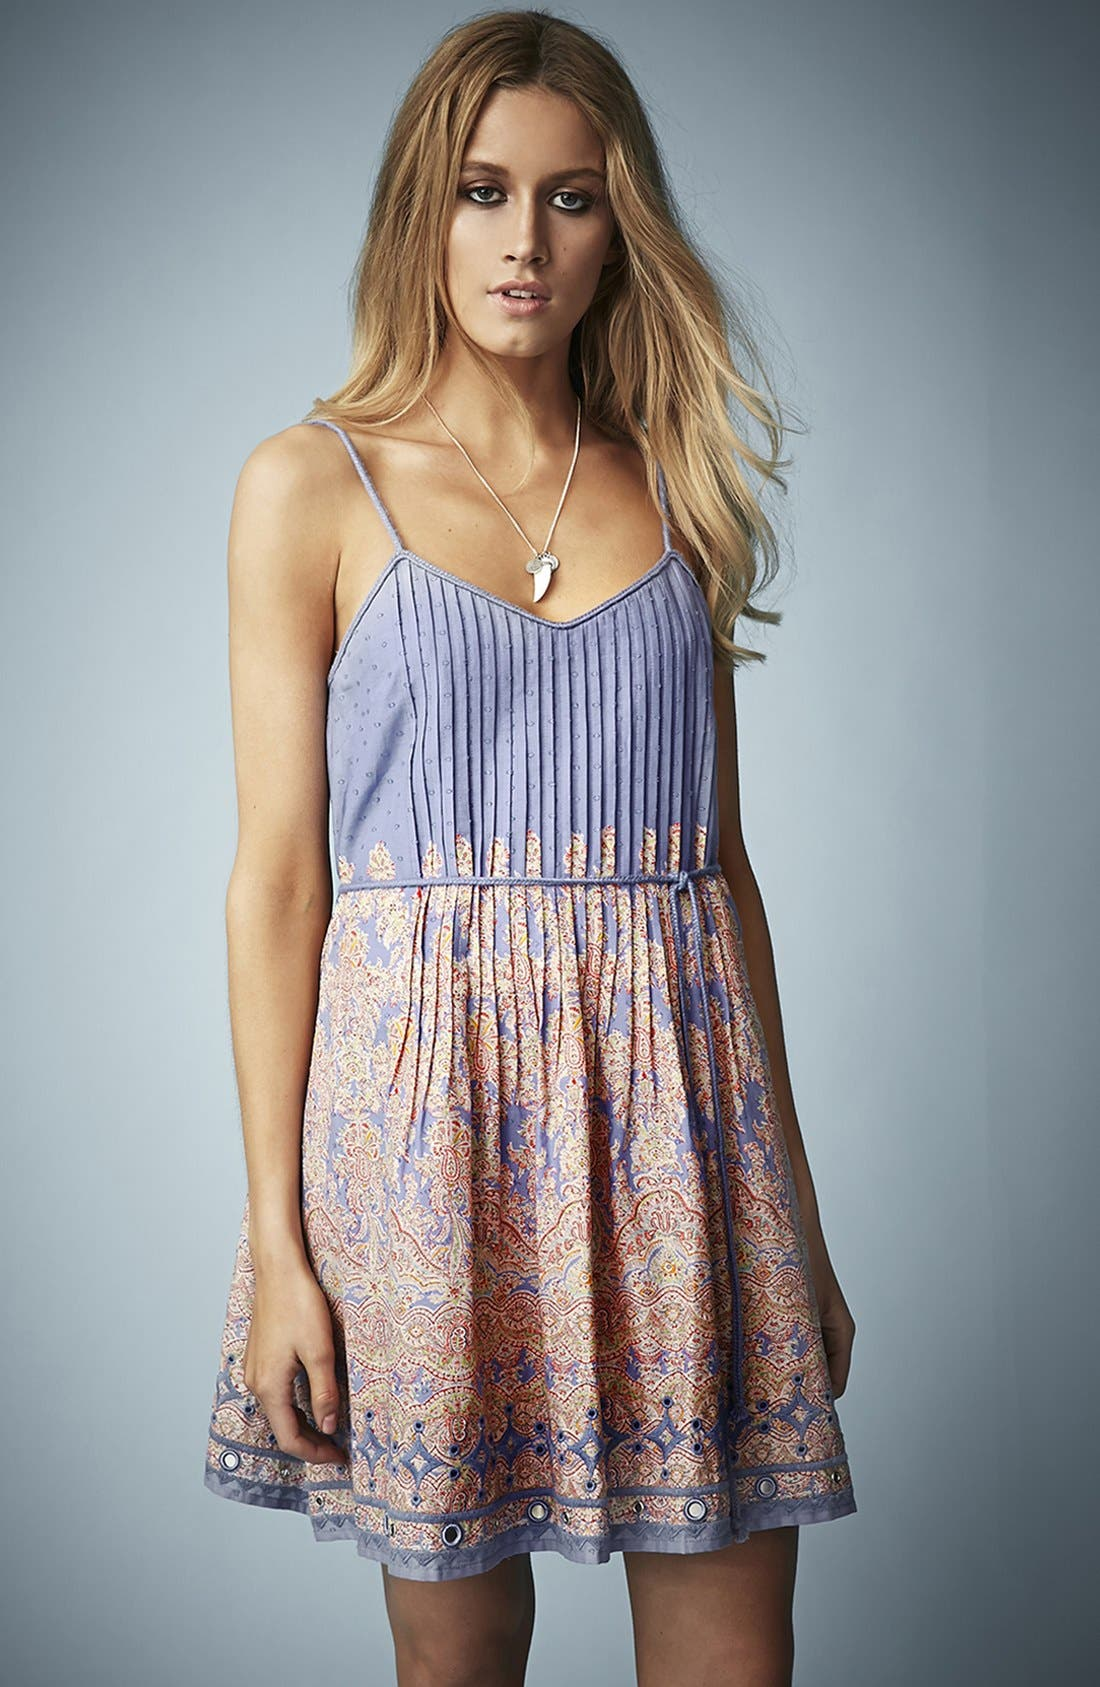 Main Image - Kate Moss for Topshop Paisley Print Sundress